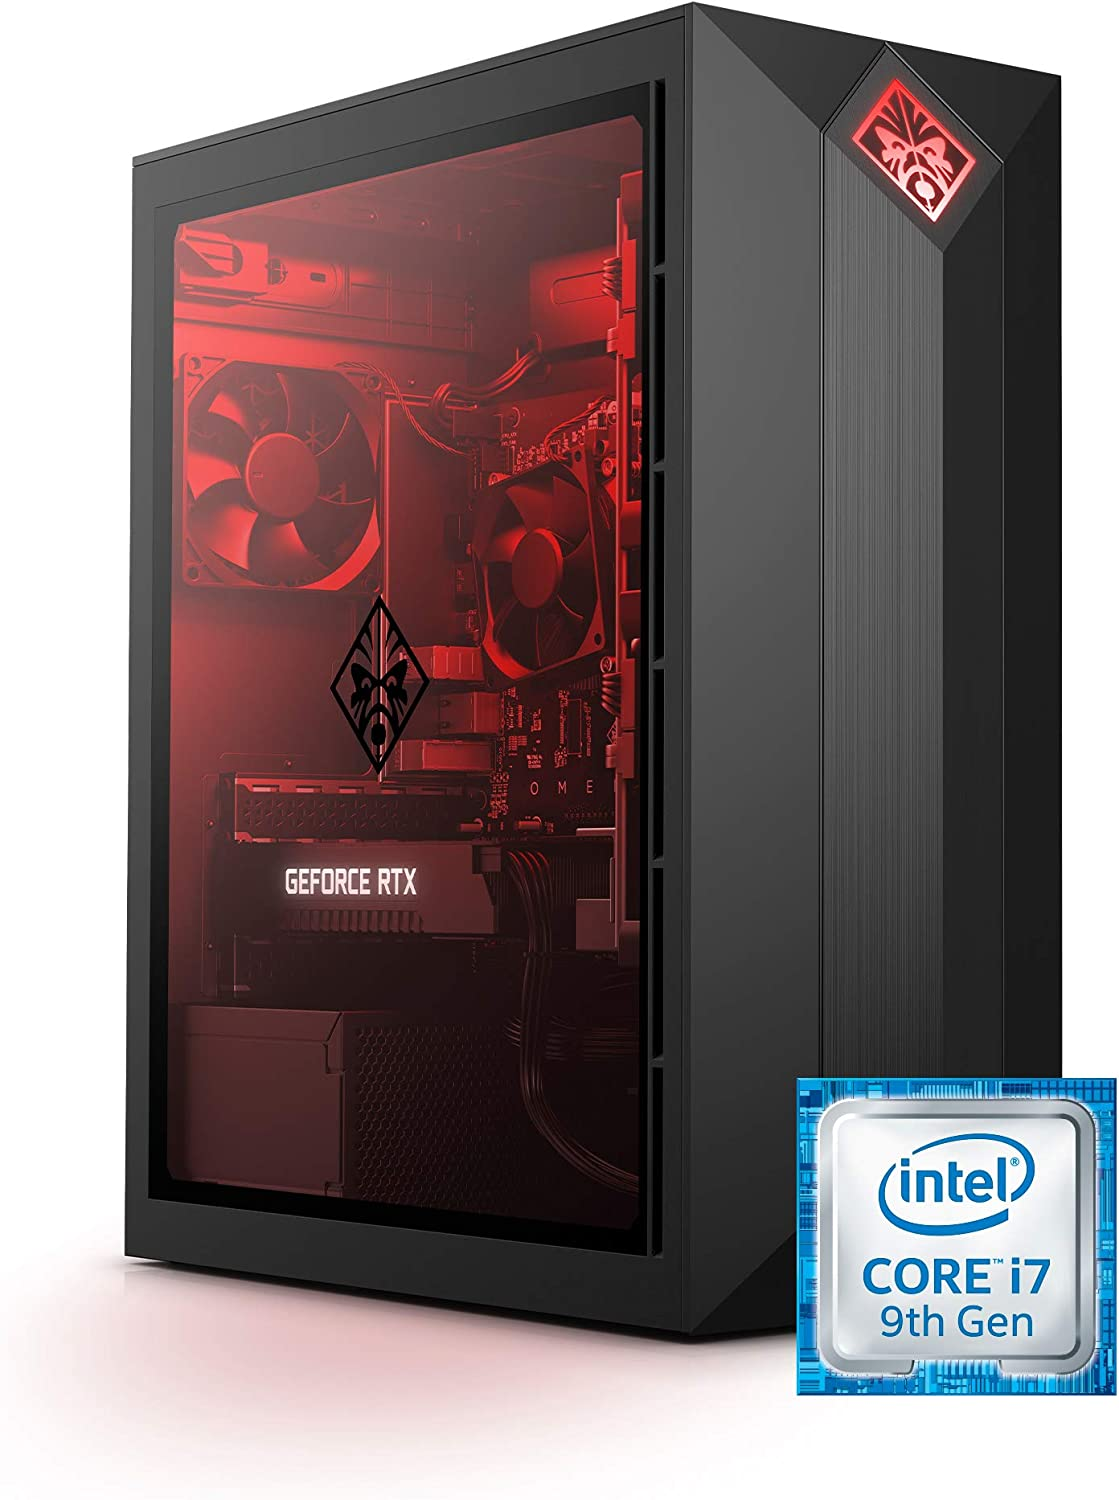 Omen by HP Obelisk Gaming Desktop Computer, Intel Core i7-9700F Processor, NVIDIA GeForce RTX 2060 6 GB, HyperX 16 GB RAM, 512 GB SSD, VR Ready, Windows 10 Home (875-0160, Black)